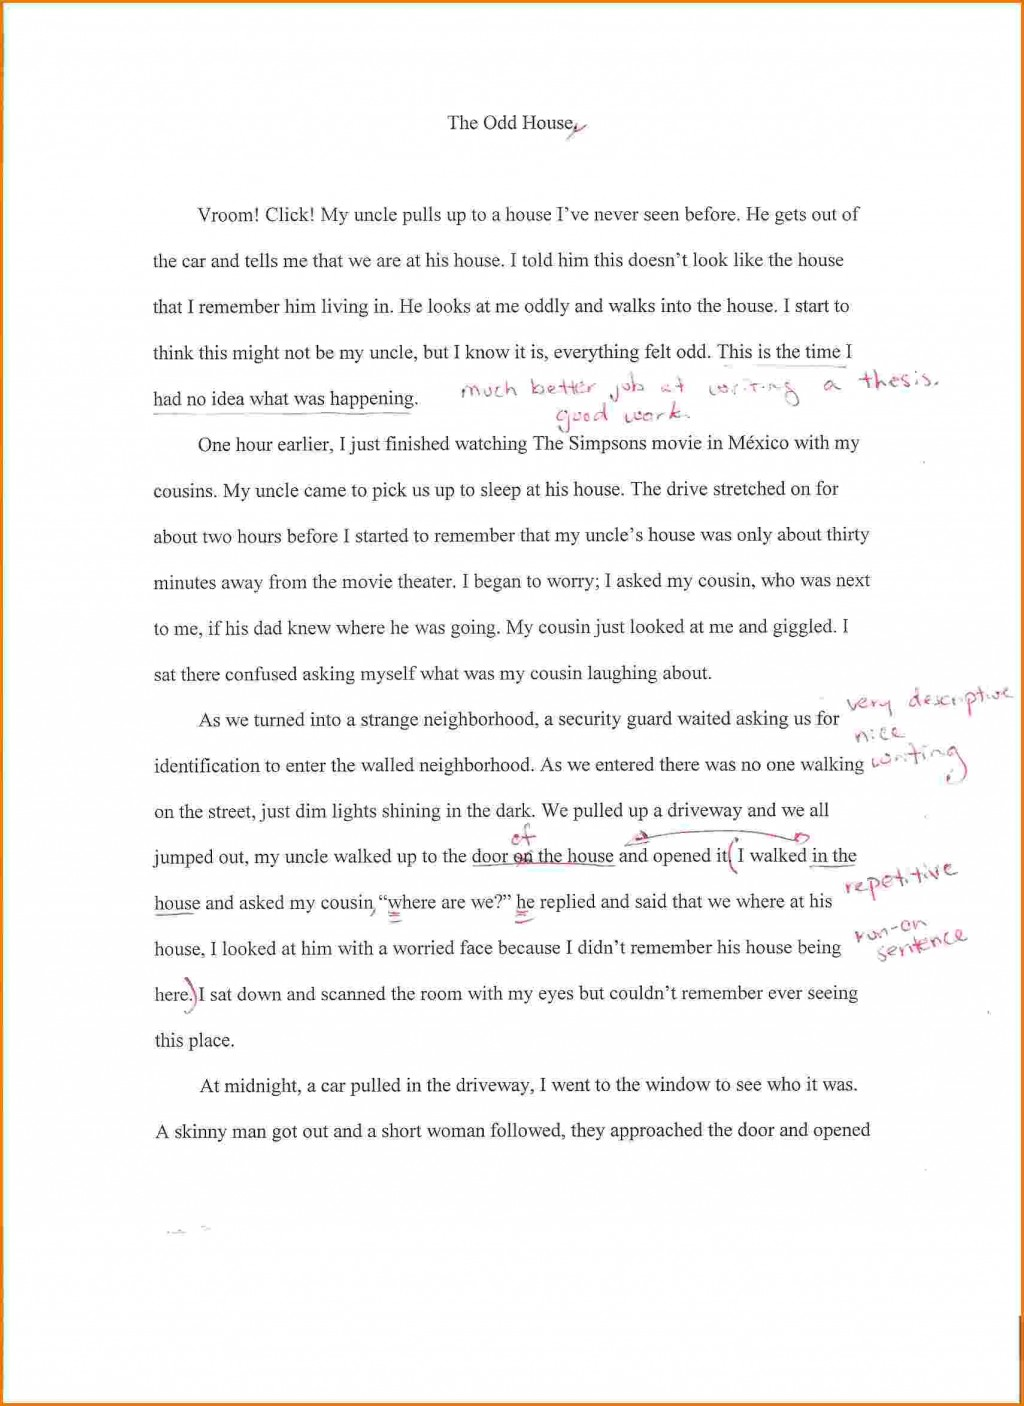 006 Family Background Essay Examplesample2 Unusual Autobiography Example Pdf Autobiographical Sample For 8th Grade Template Large